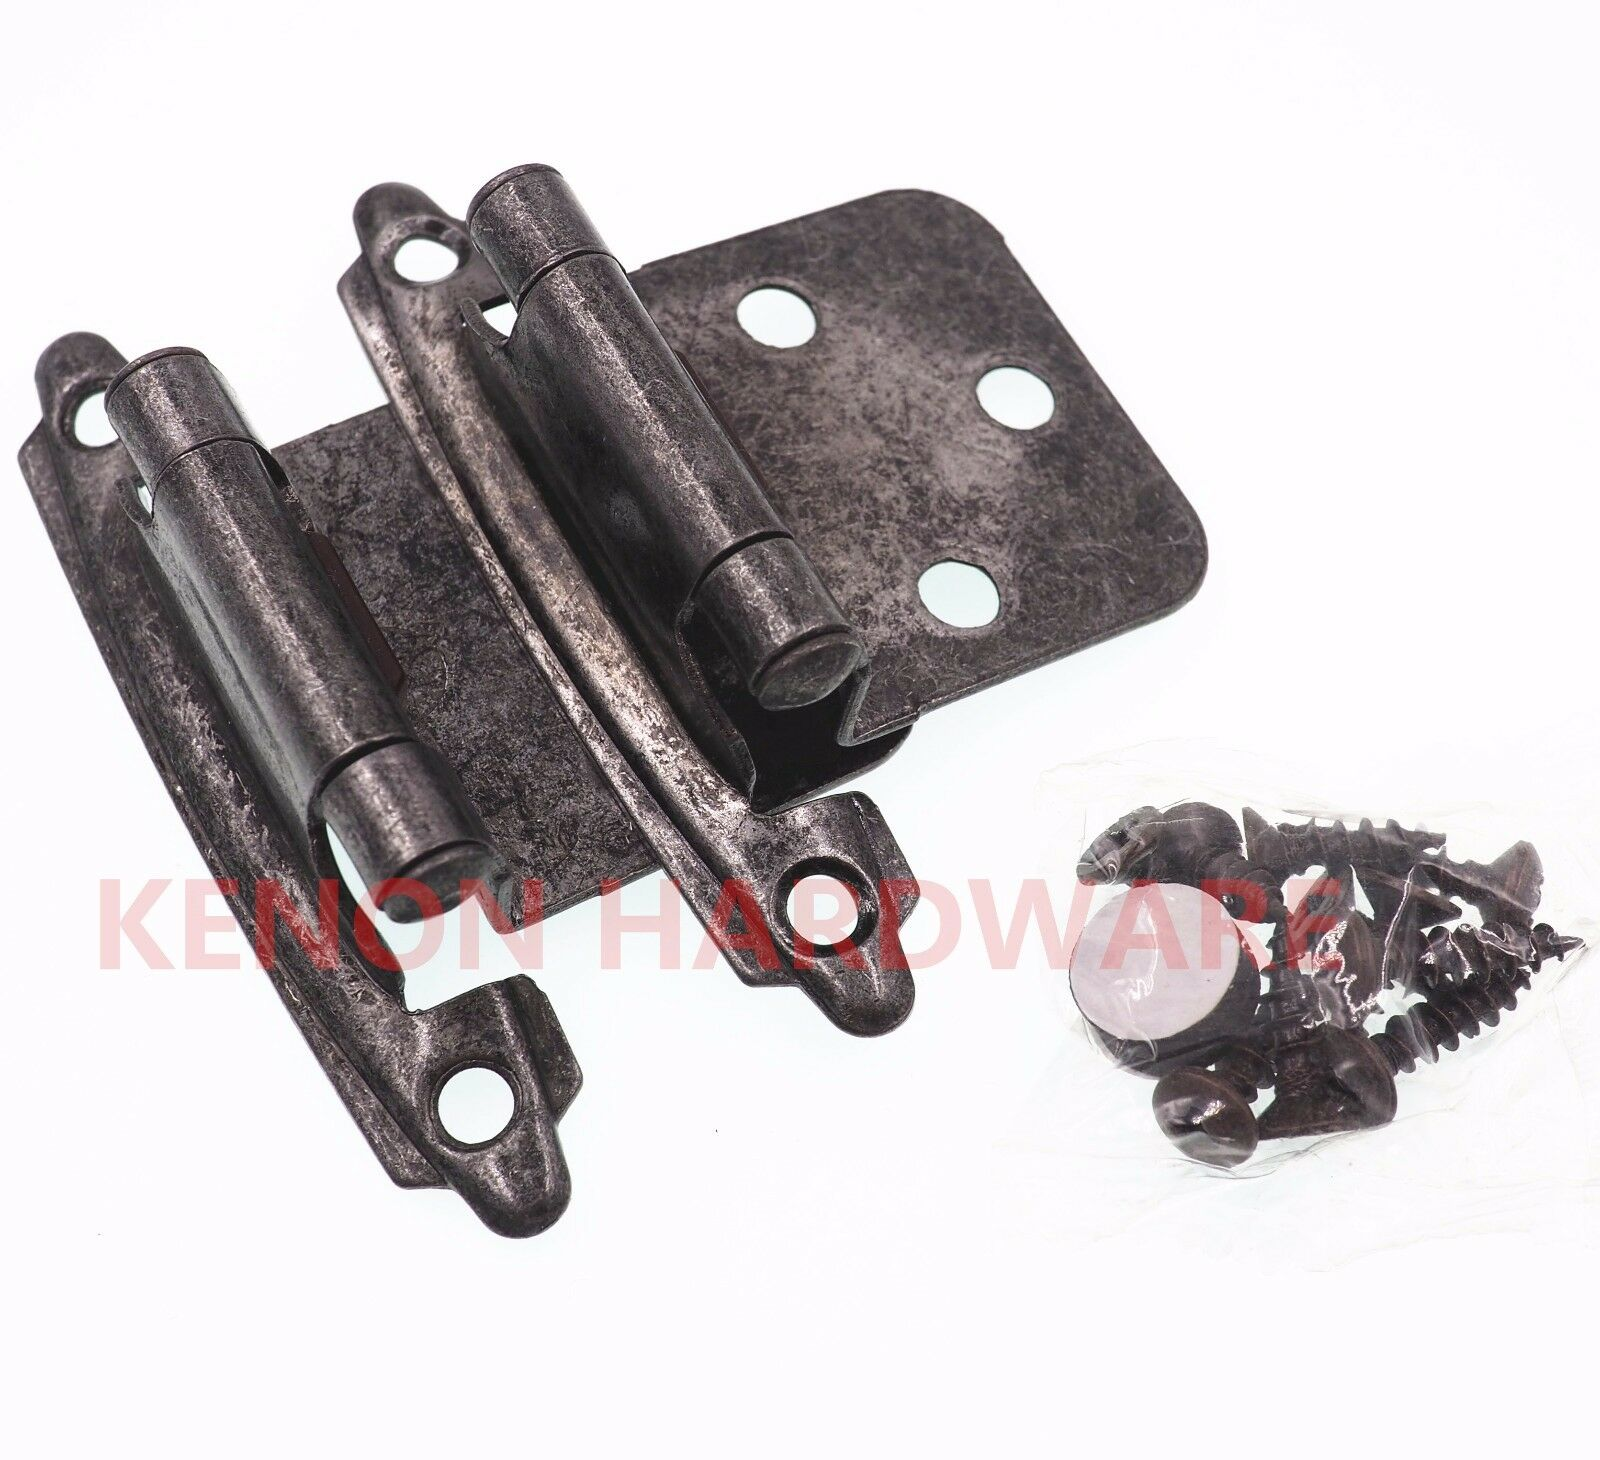 Lot of 25 Pairs /50pcs Self Closing Variable OVERLAY Cabinet Hinges-Vibra Pewter